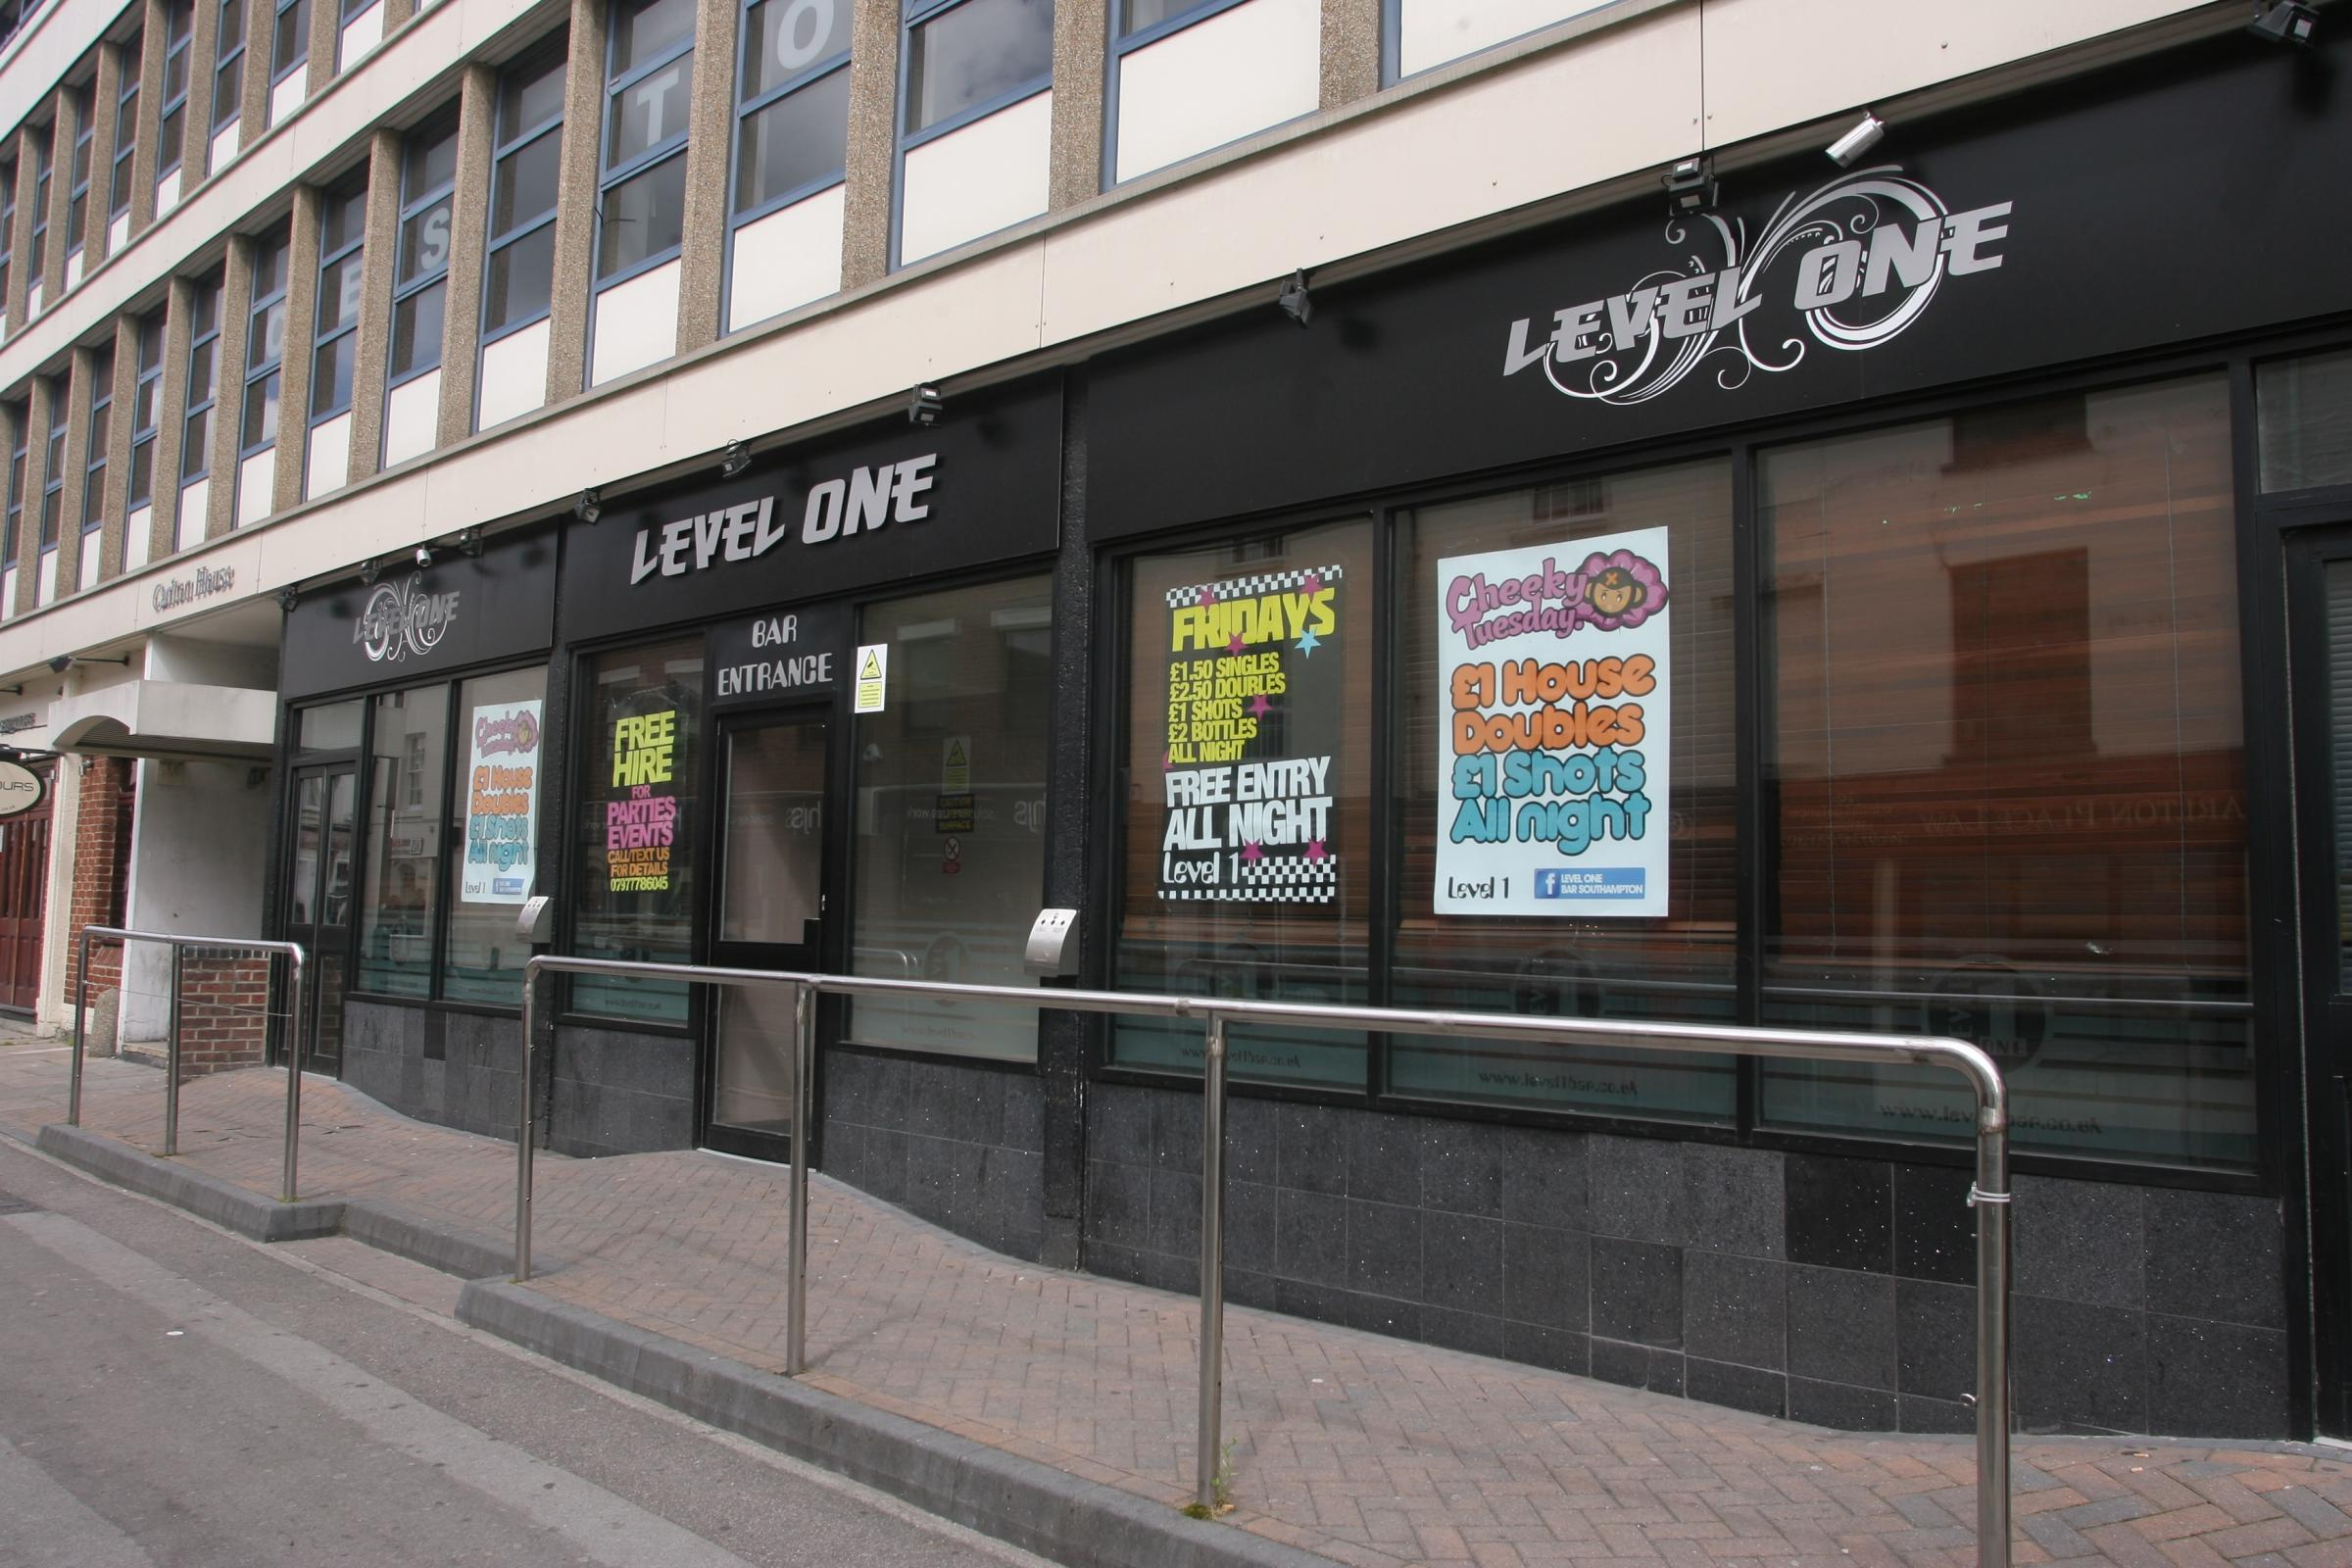 Southampton bar to be tuned into flats